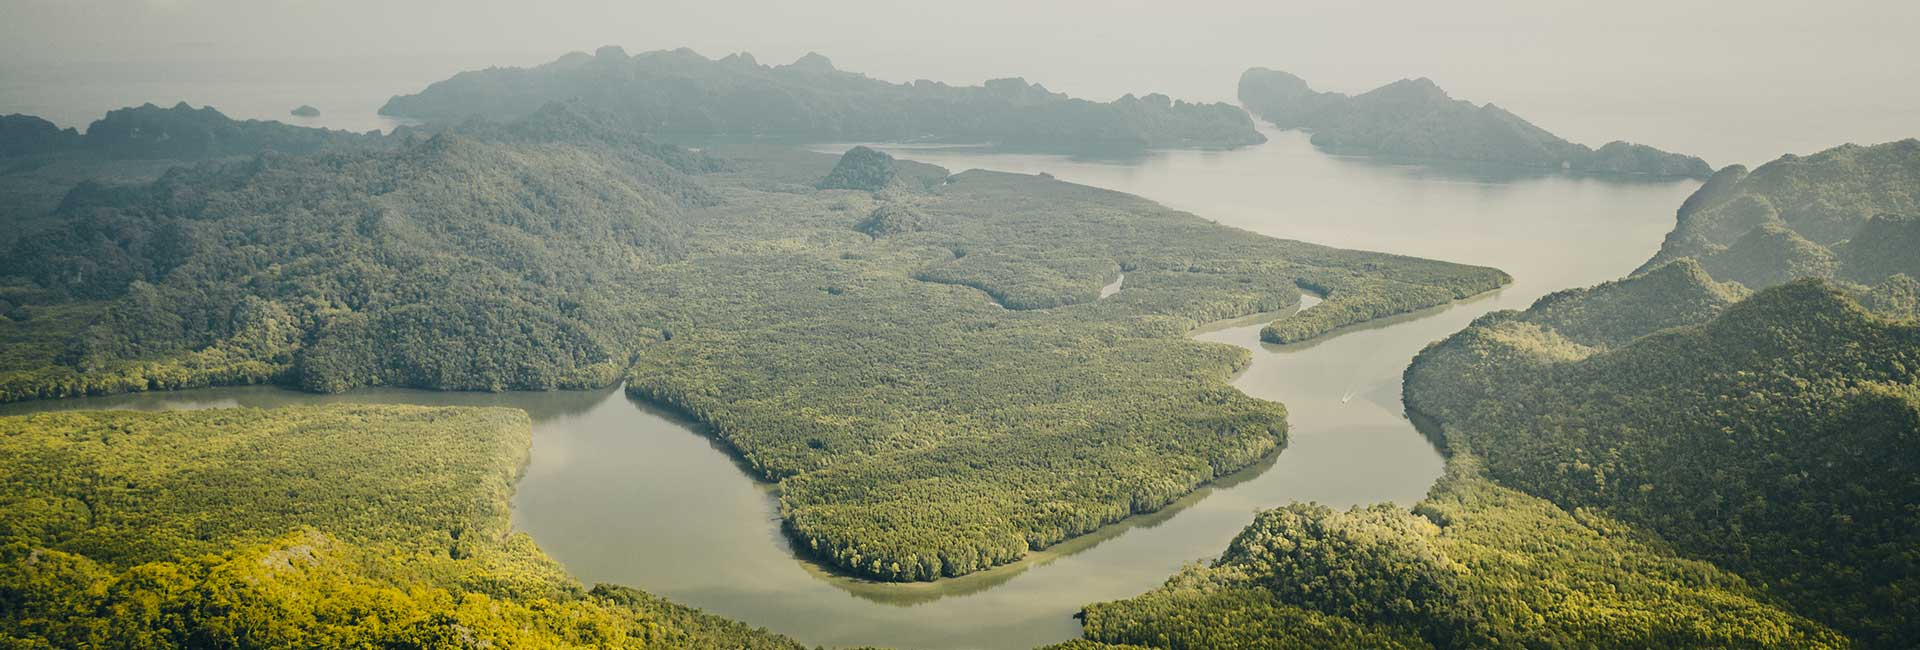 5-Mangrove-Forest